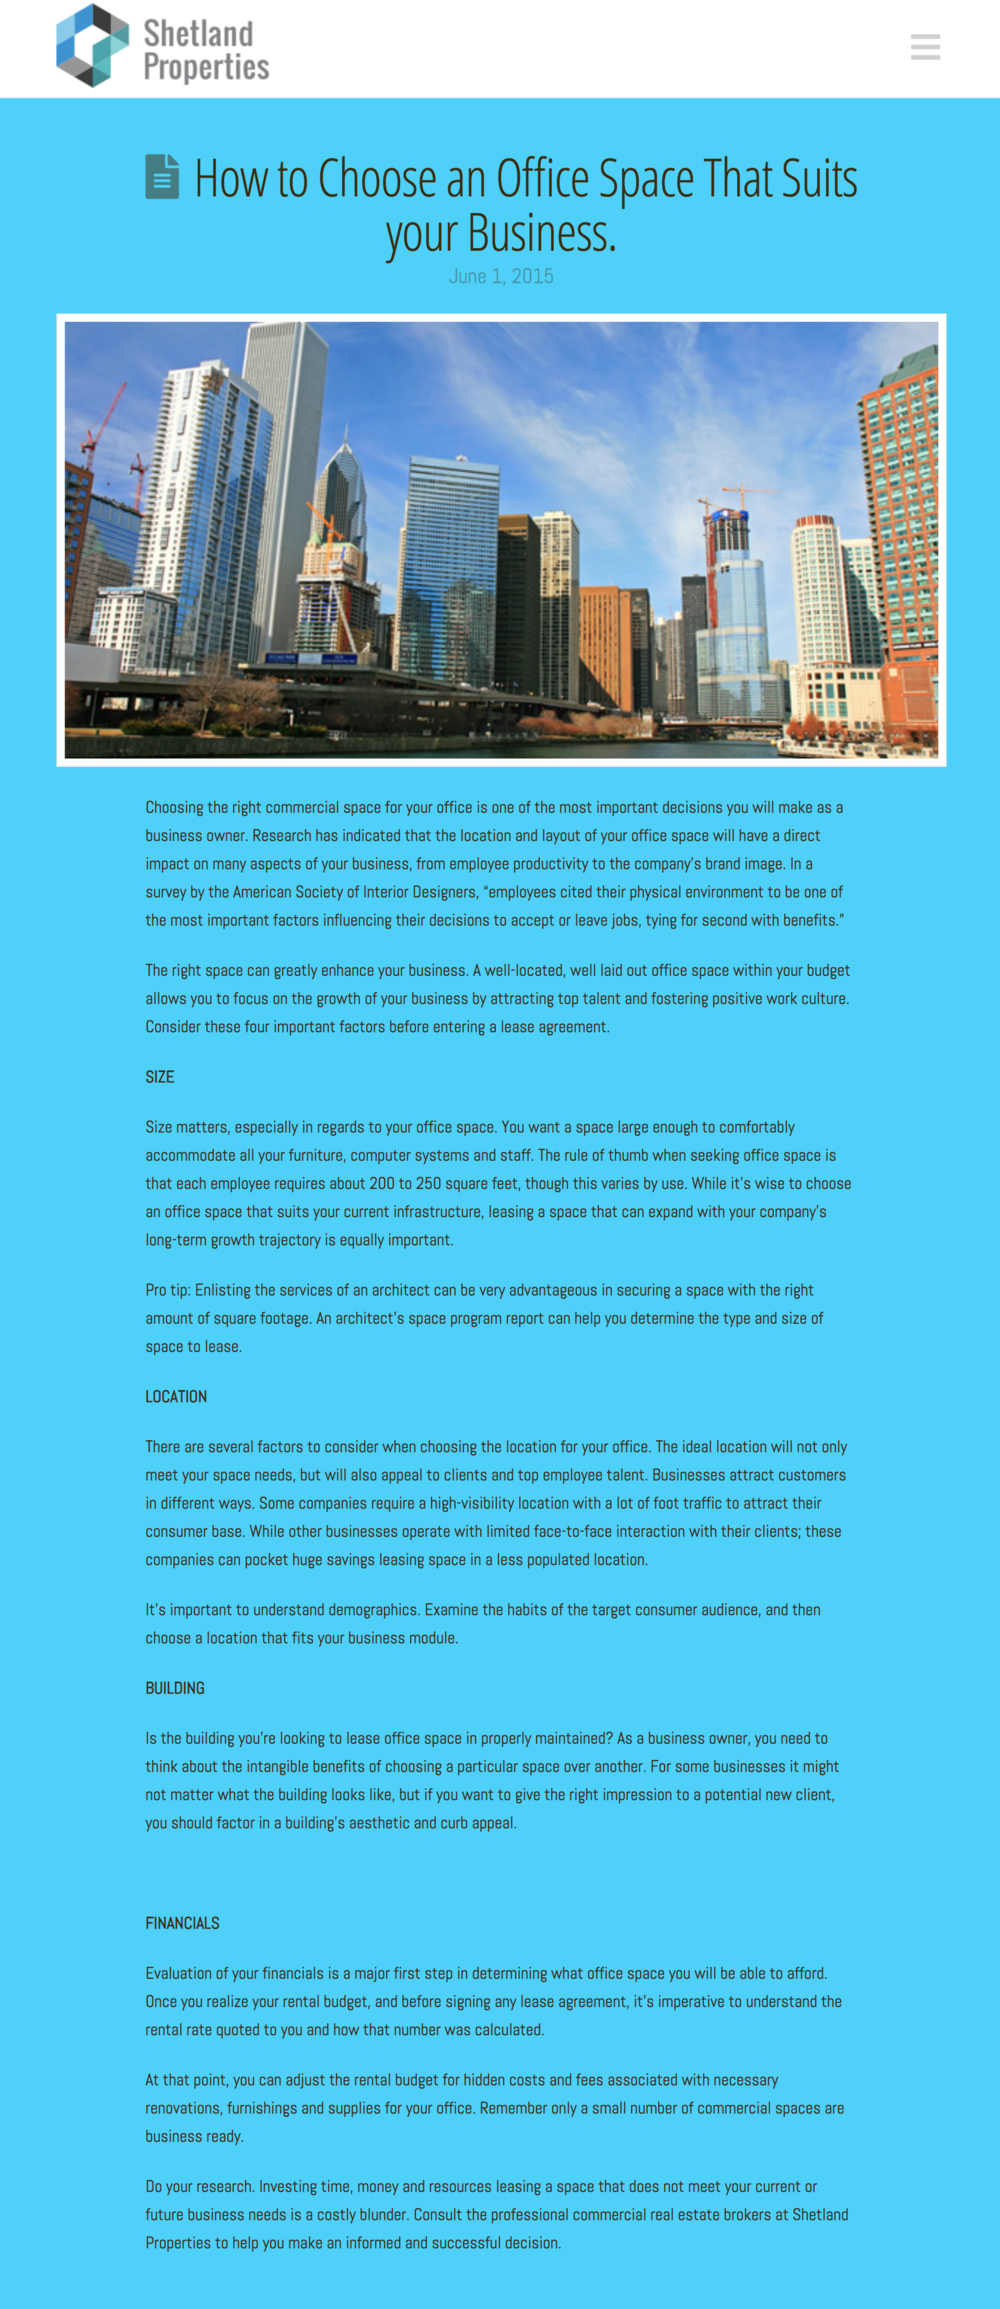 screencapture-shetland-how-to-choose-an-office-space-that-suits-your-business-2019-01-09-21_59_31.png